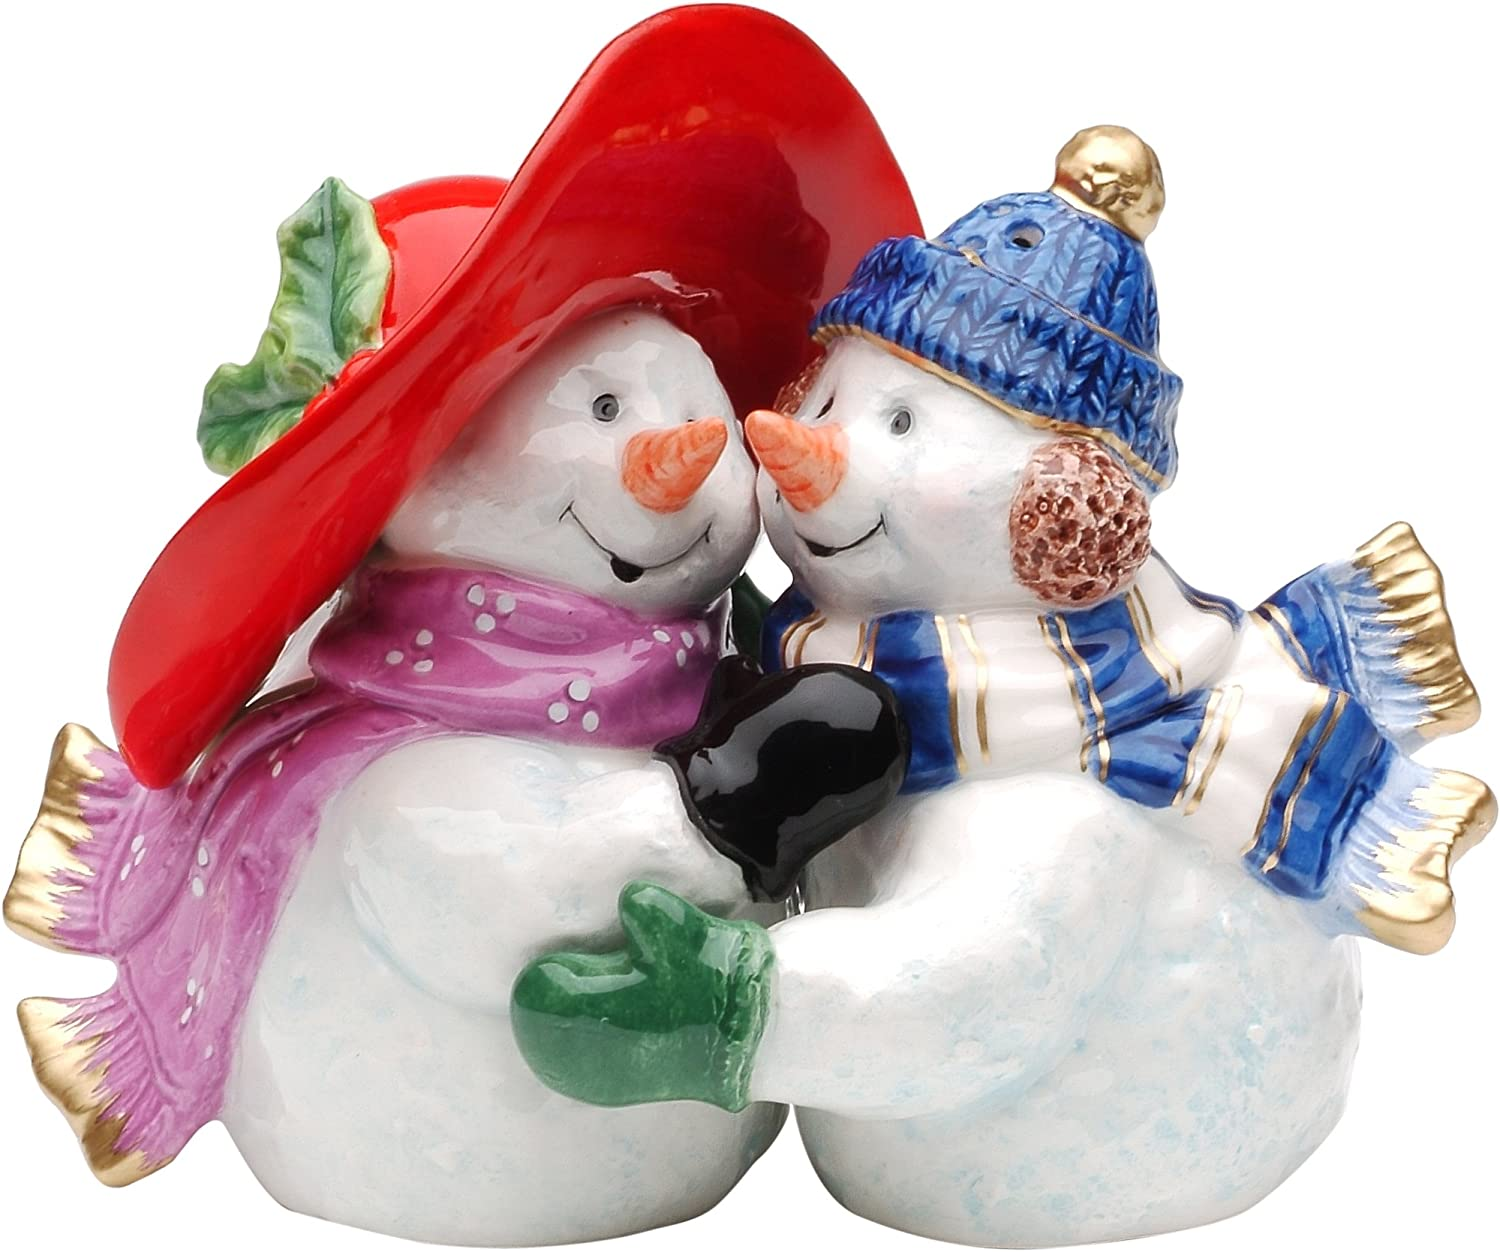 Cosmos Gifts 56515 Snowman Couple Salt And Pepper Set 3 1 2 Inch Salt And Pepper Shaker Sets Kitchen Dining